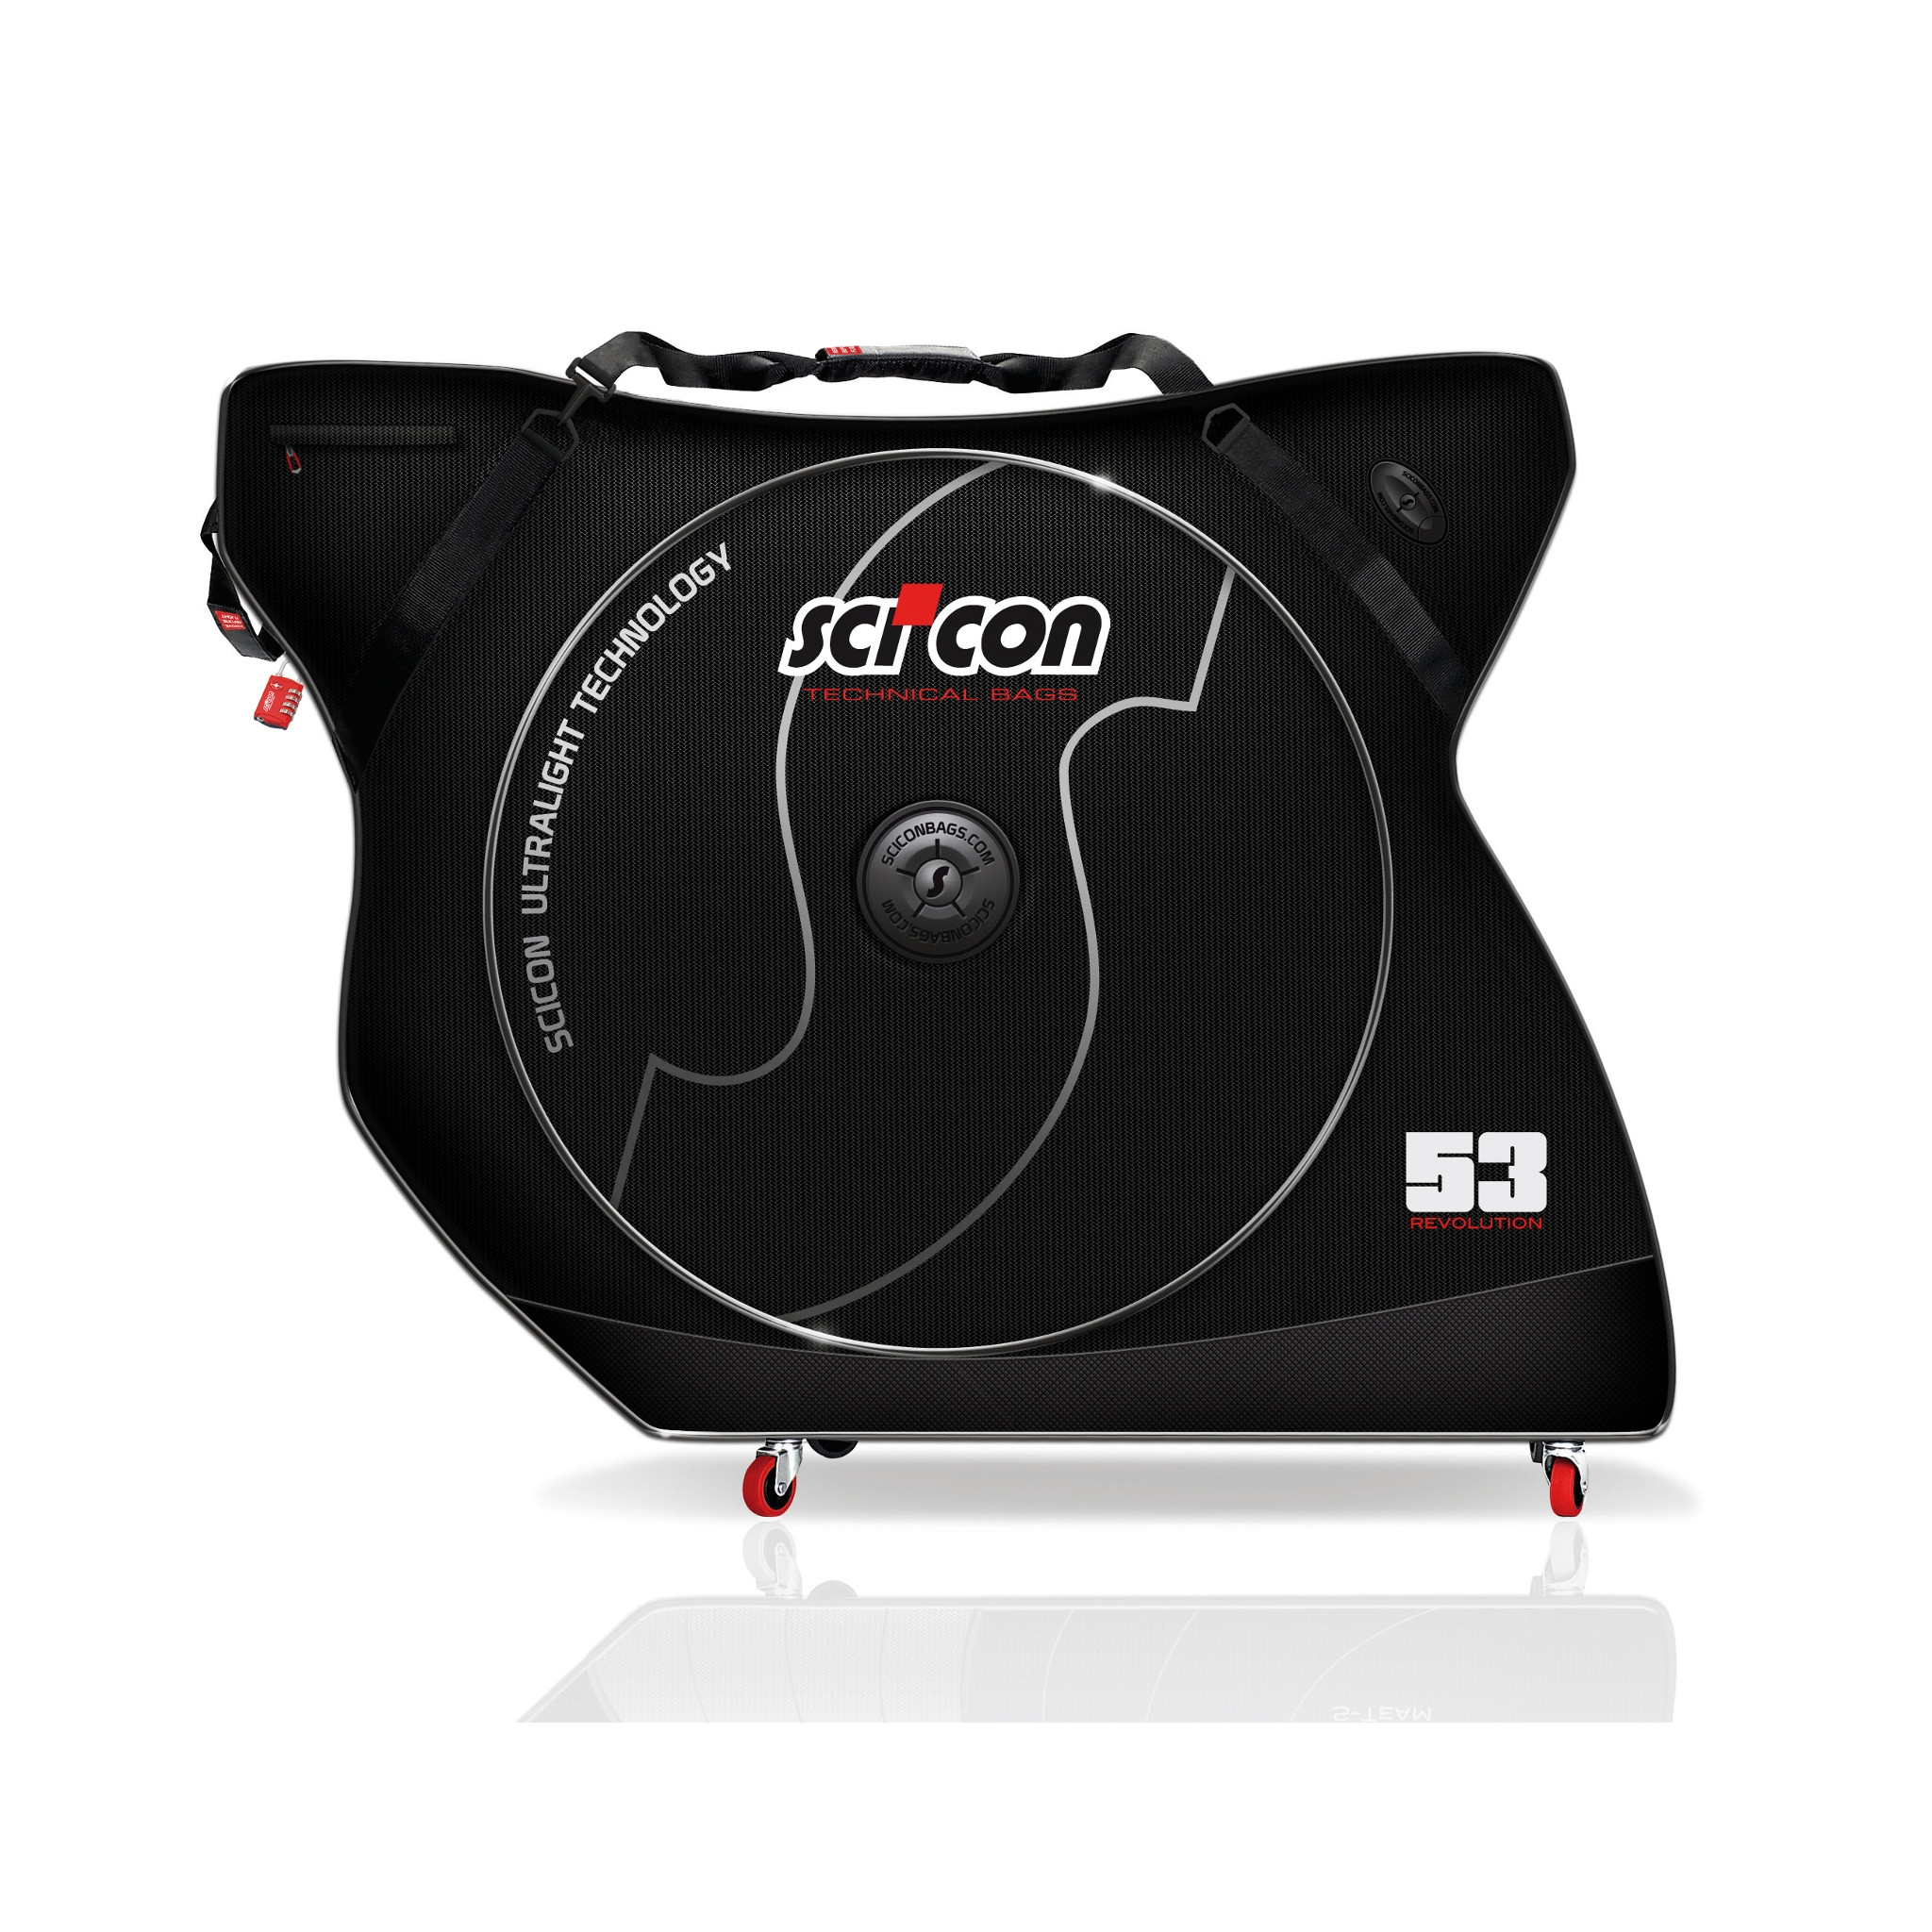 Housse de transport scicon aerocomfort 2 0 tsa probikeshop for Housse transport velo scicon